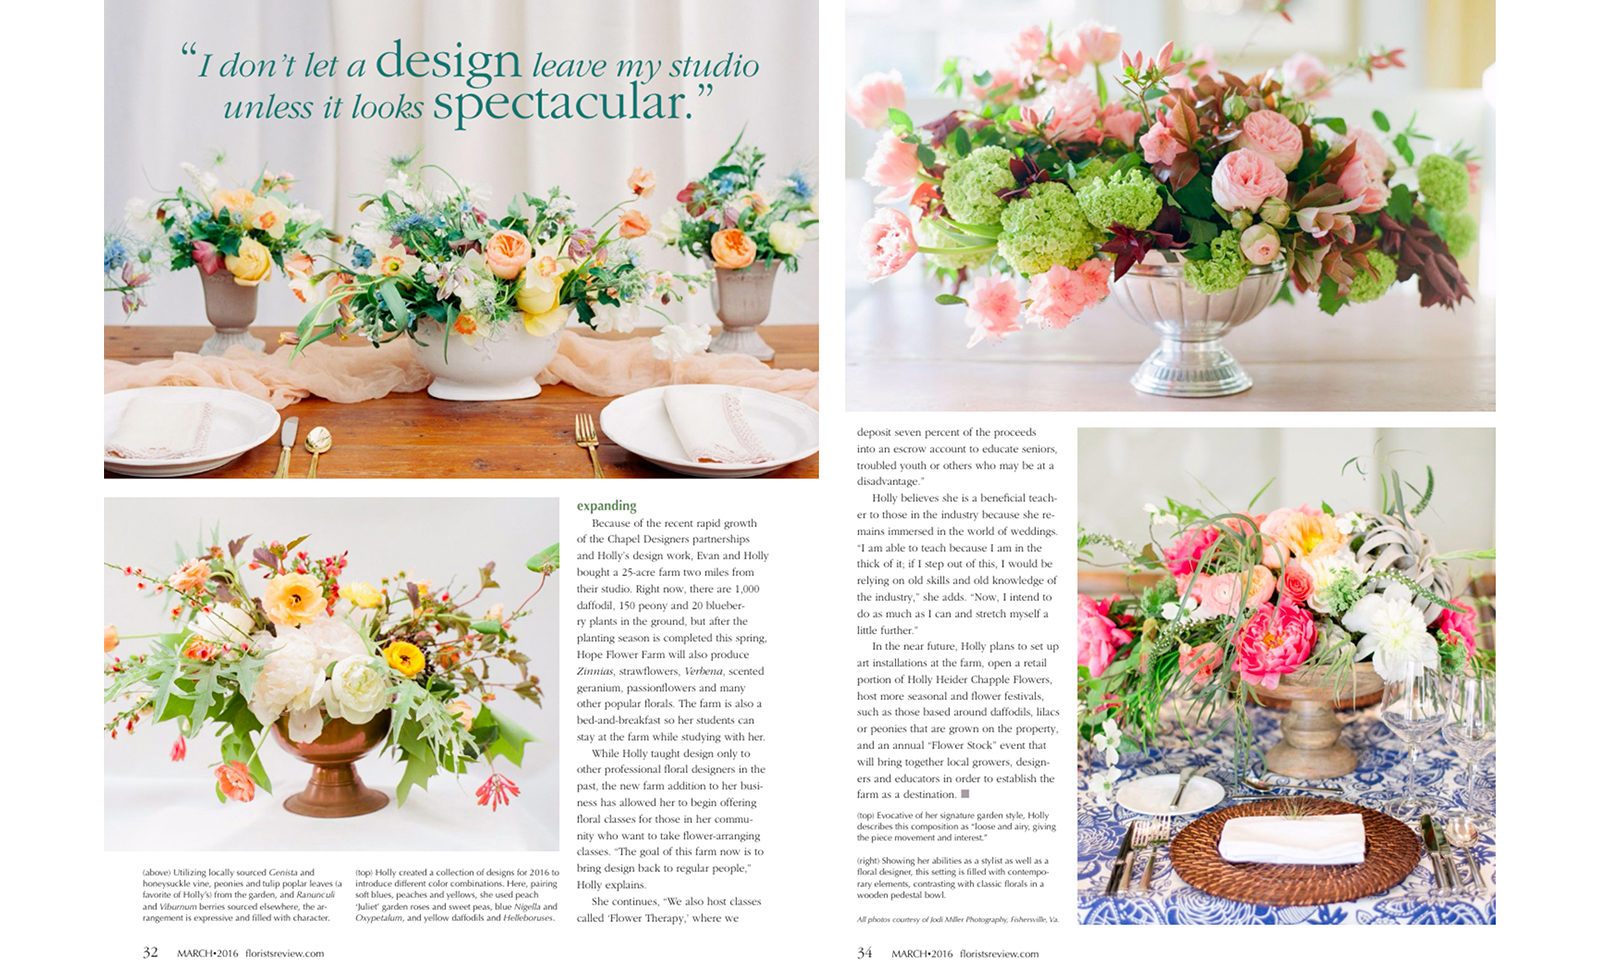 12-Florists-Review-March-2016